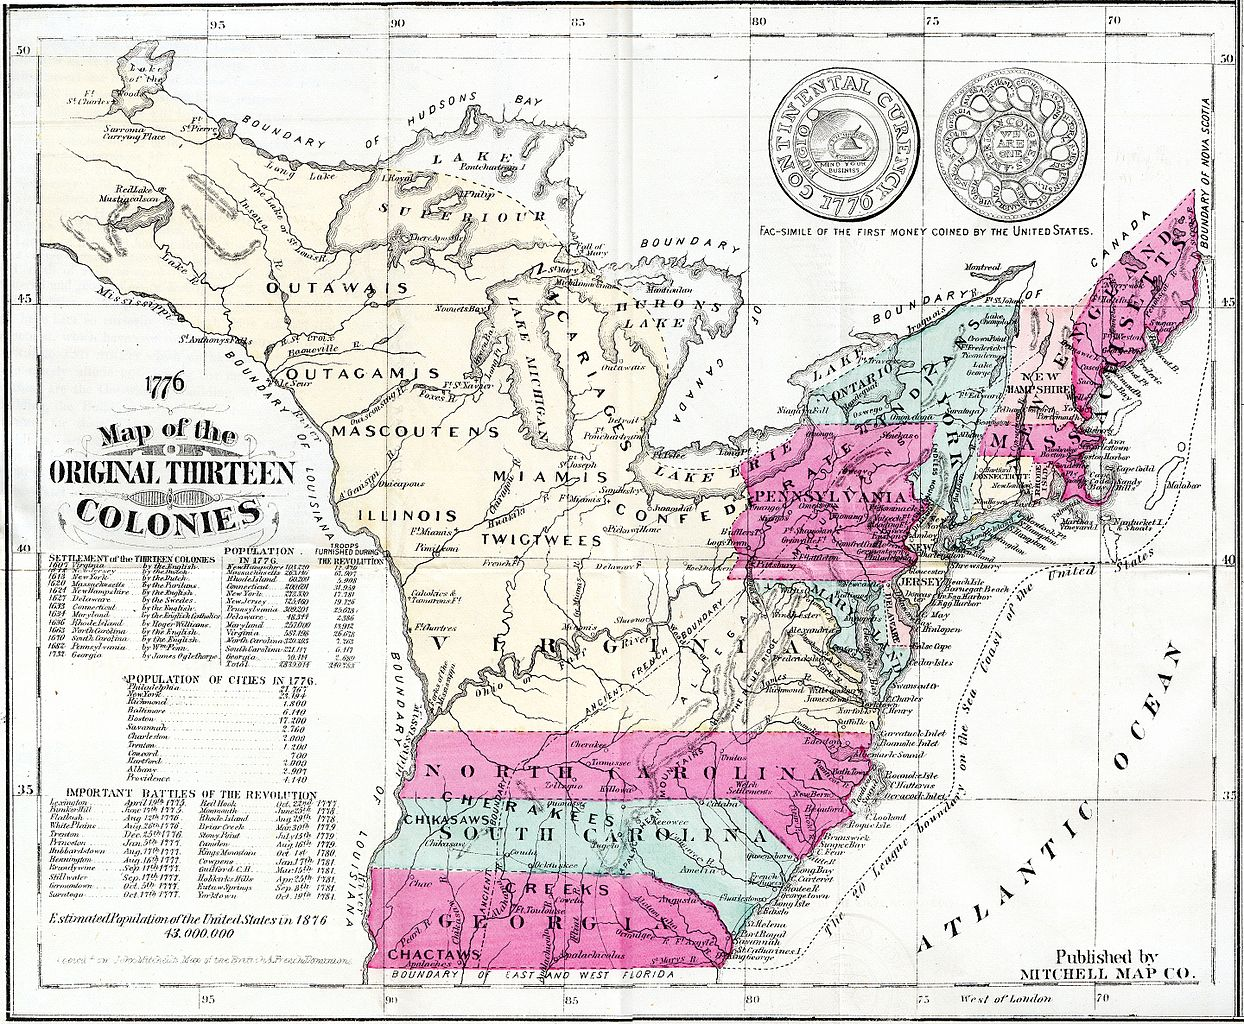 thirteen colonies map of the thirteen original colonies as published for the us centennial in 1876